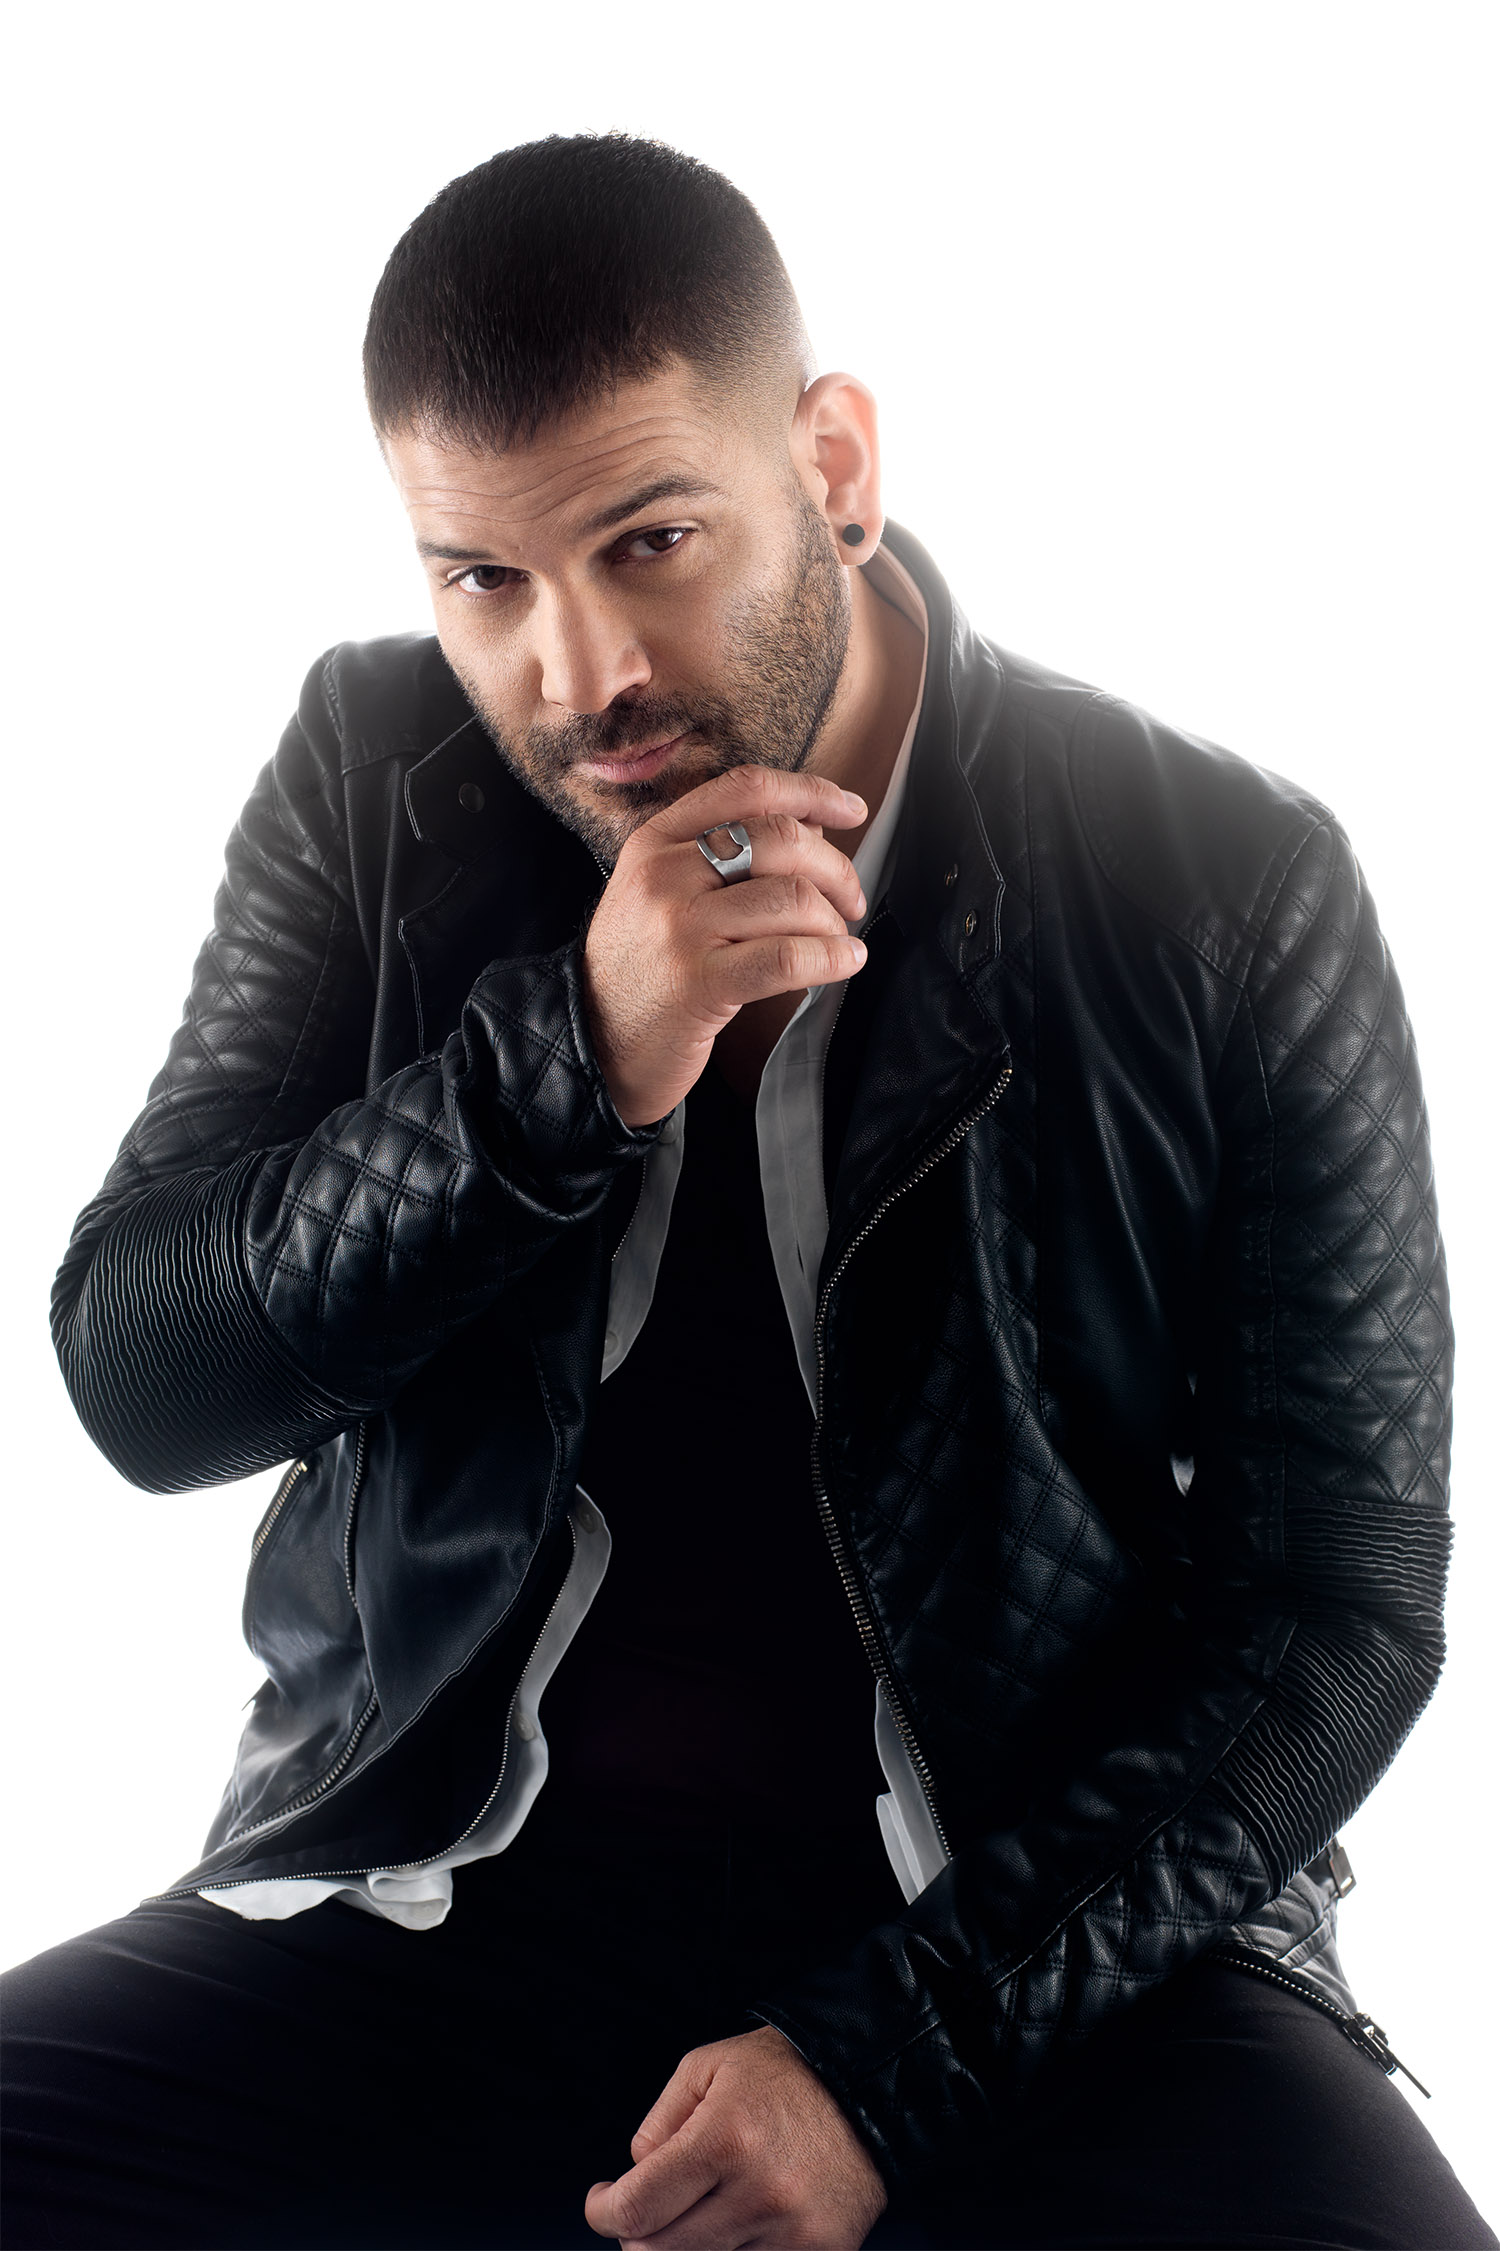 Guillermo Diaz for The Hollywood Reporter - Whether you love comedy or drama, Guillermo's characters have delivered something for you to obsess over - from Half Baked to Scandal, his filmography is stacked with fan favorites. Not to mention, he is a damn fine human being and a real joy to work with. Here is an image M+D shot for The Hollywood Reporter.